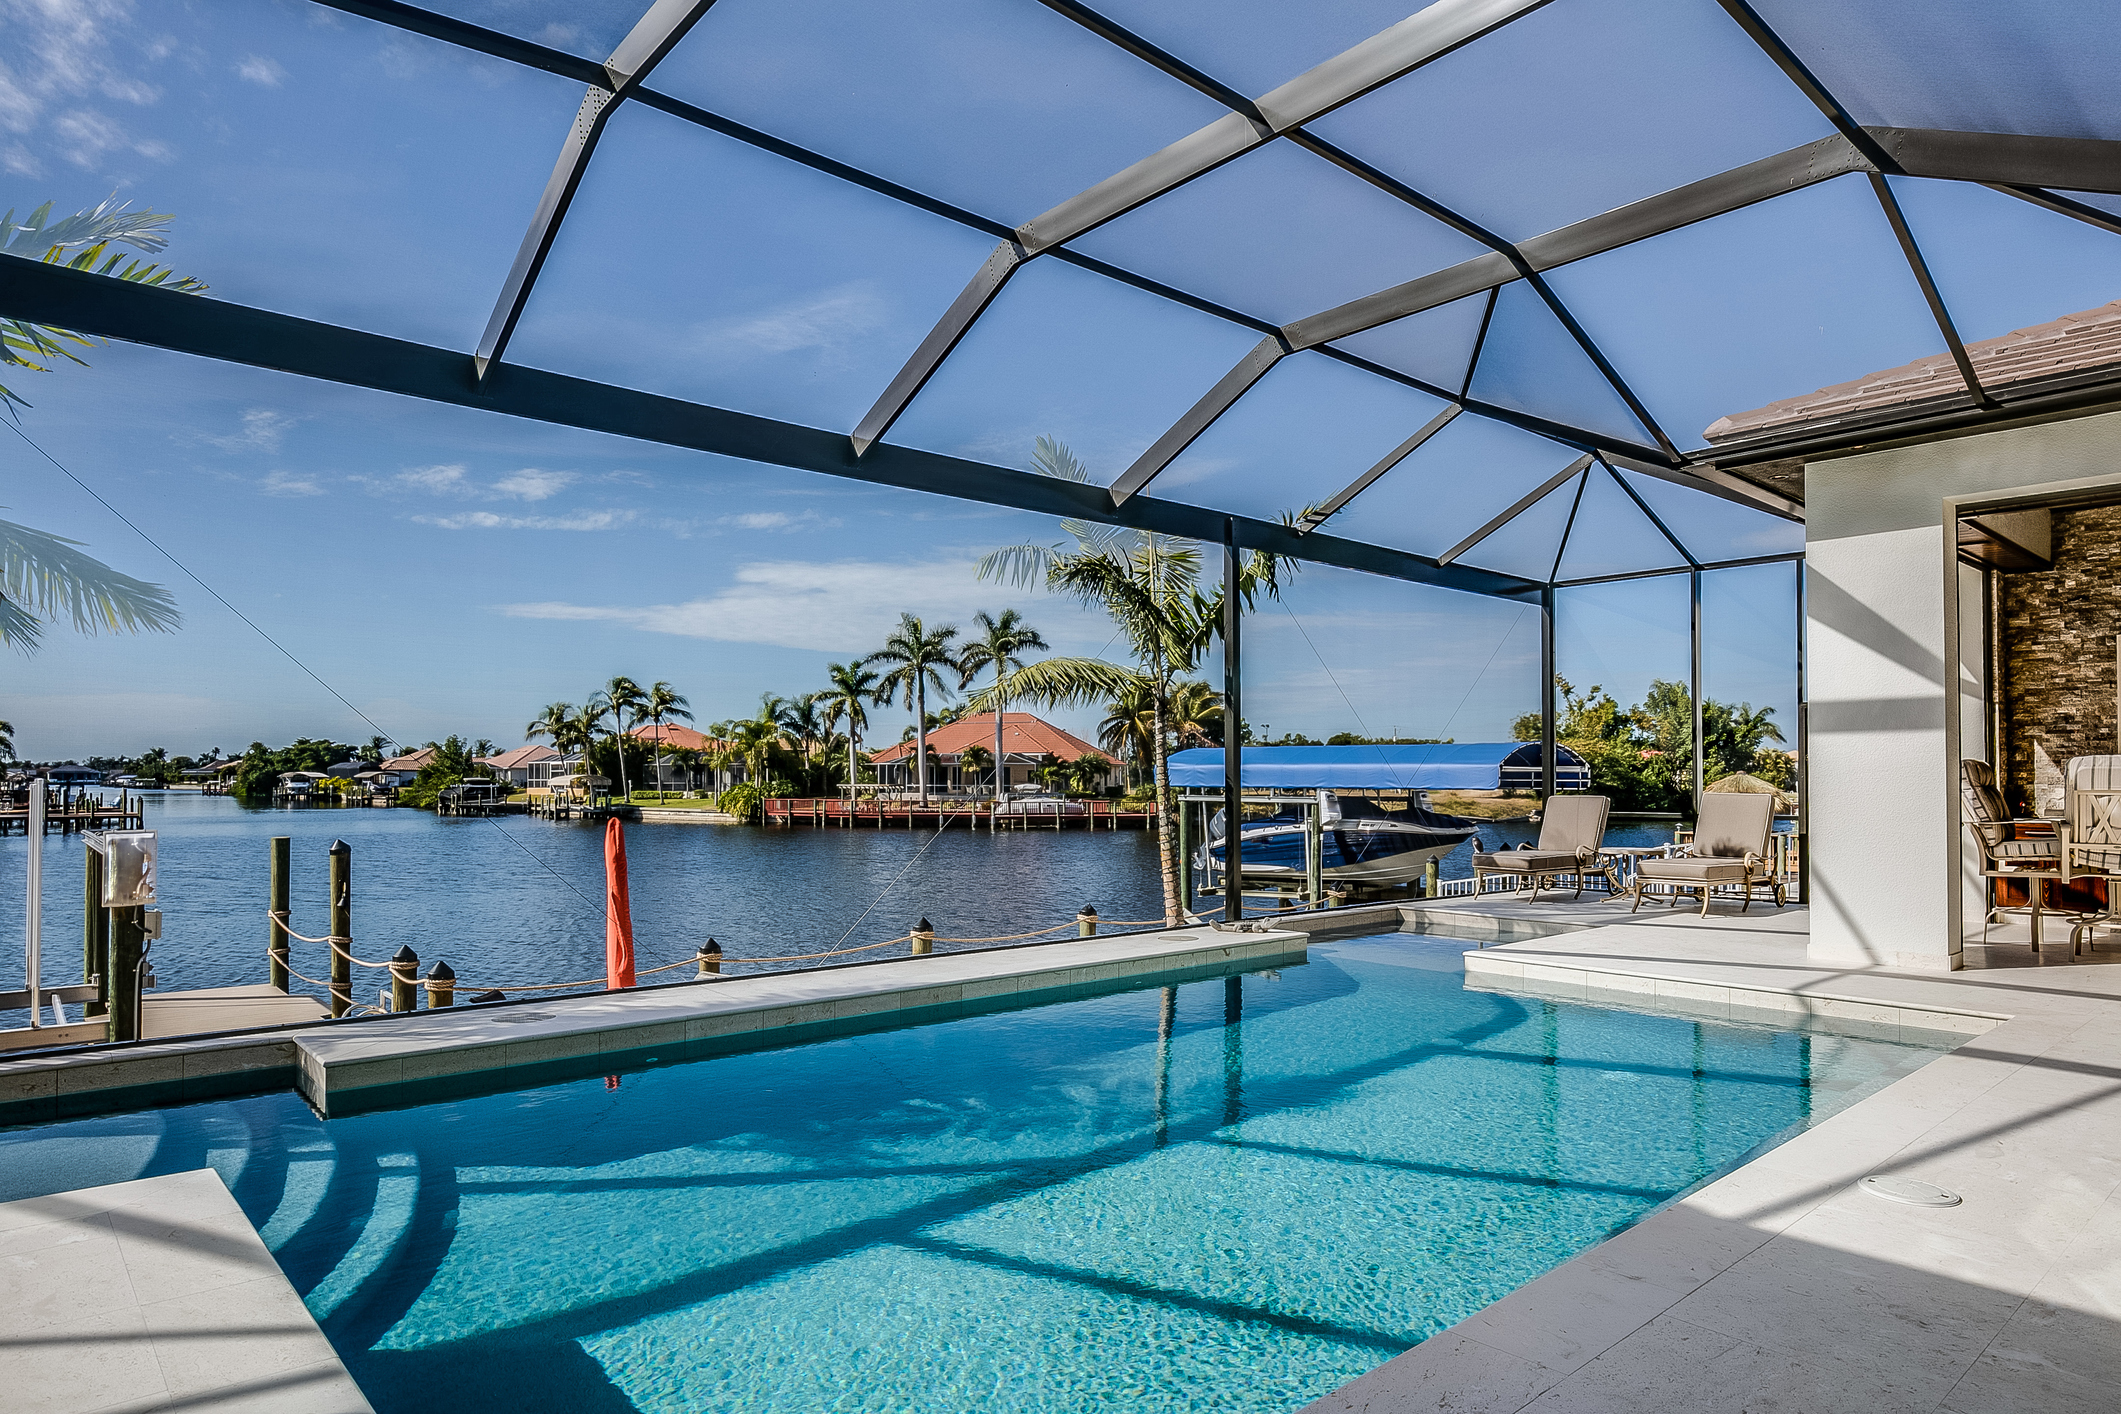 Enjoy The View With A Panoramic Pool Enclosure Tripod Aluminum